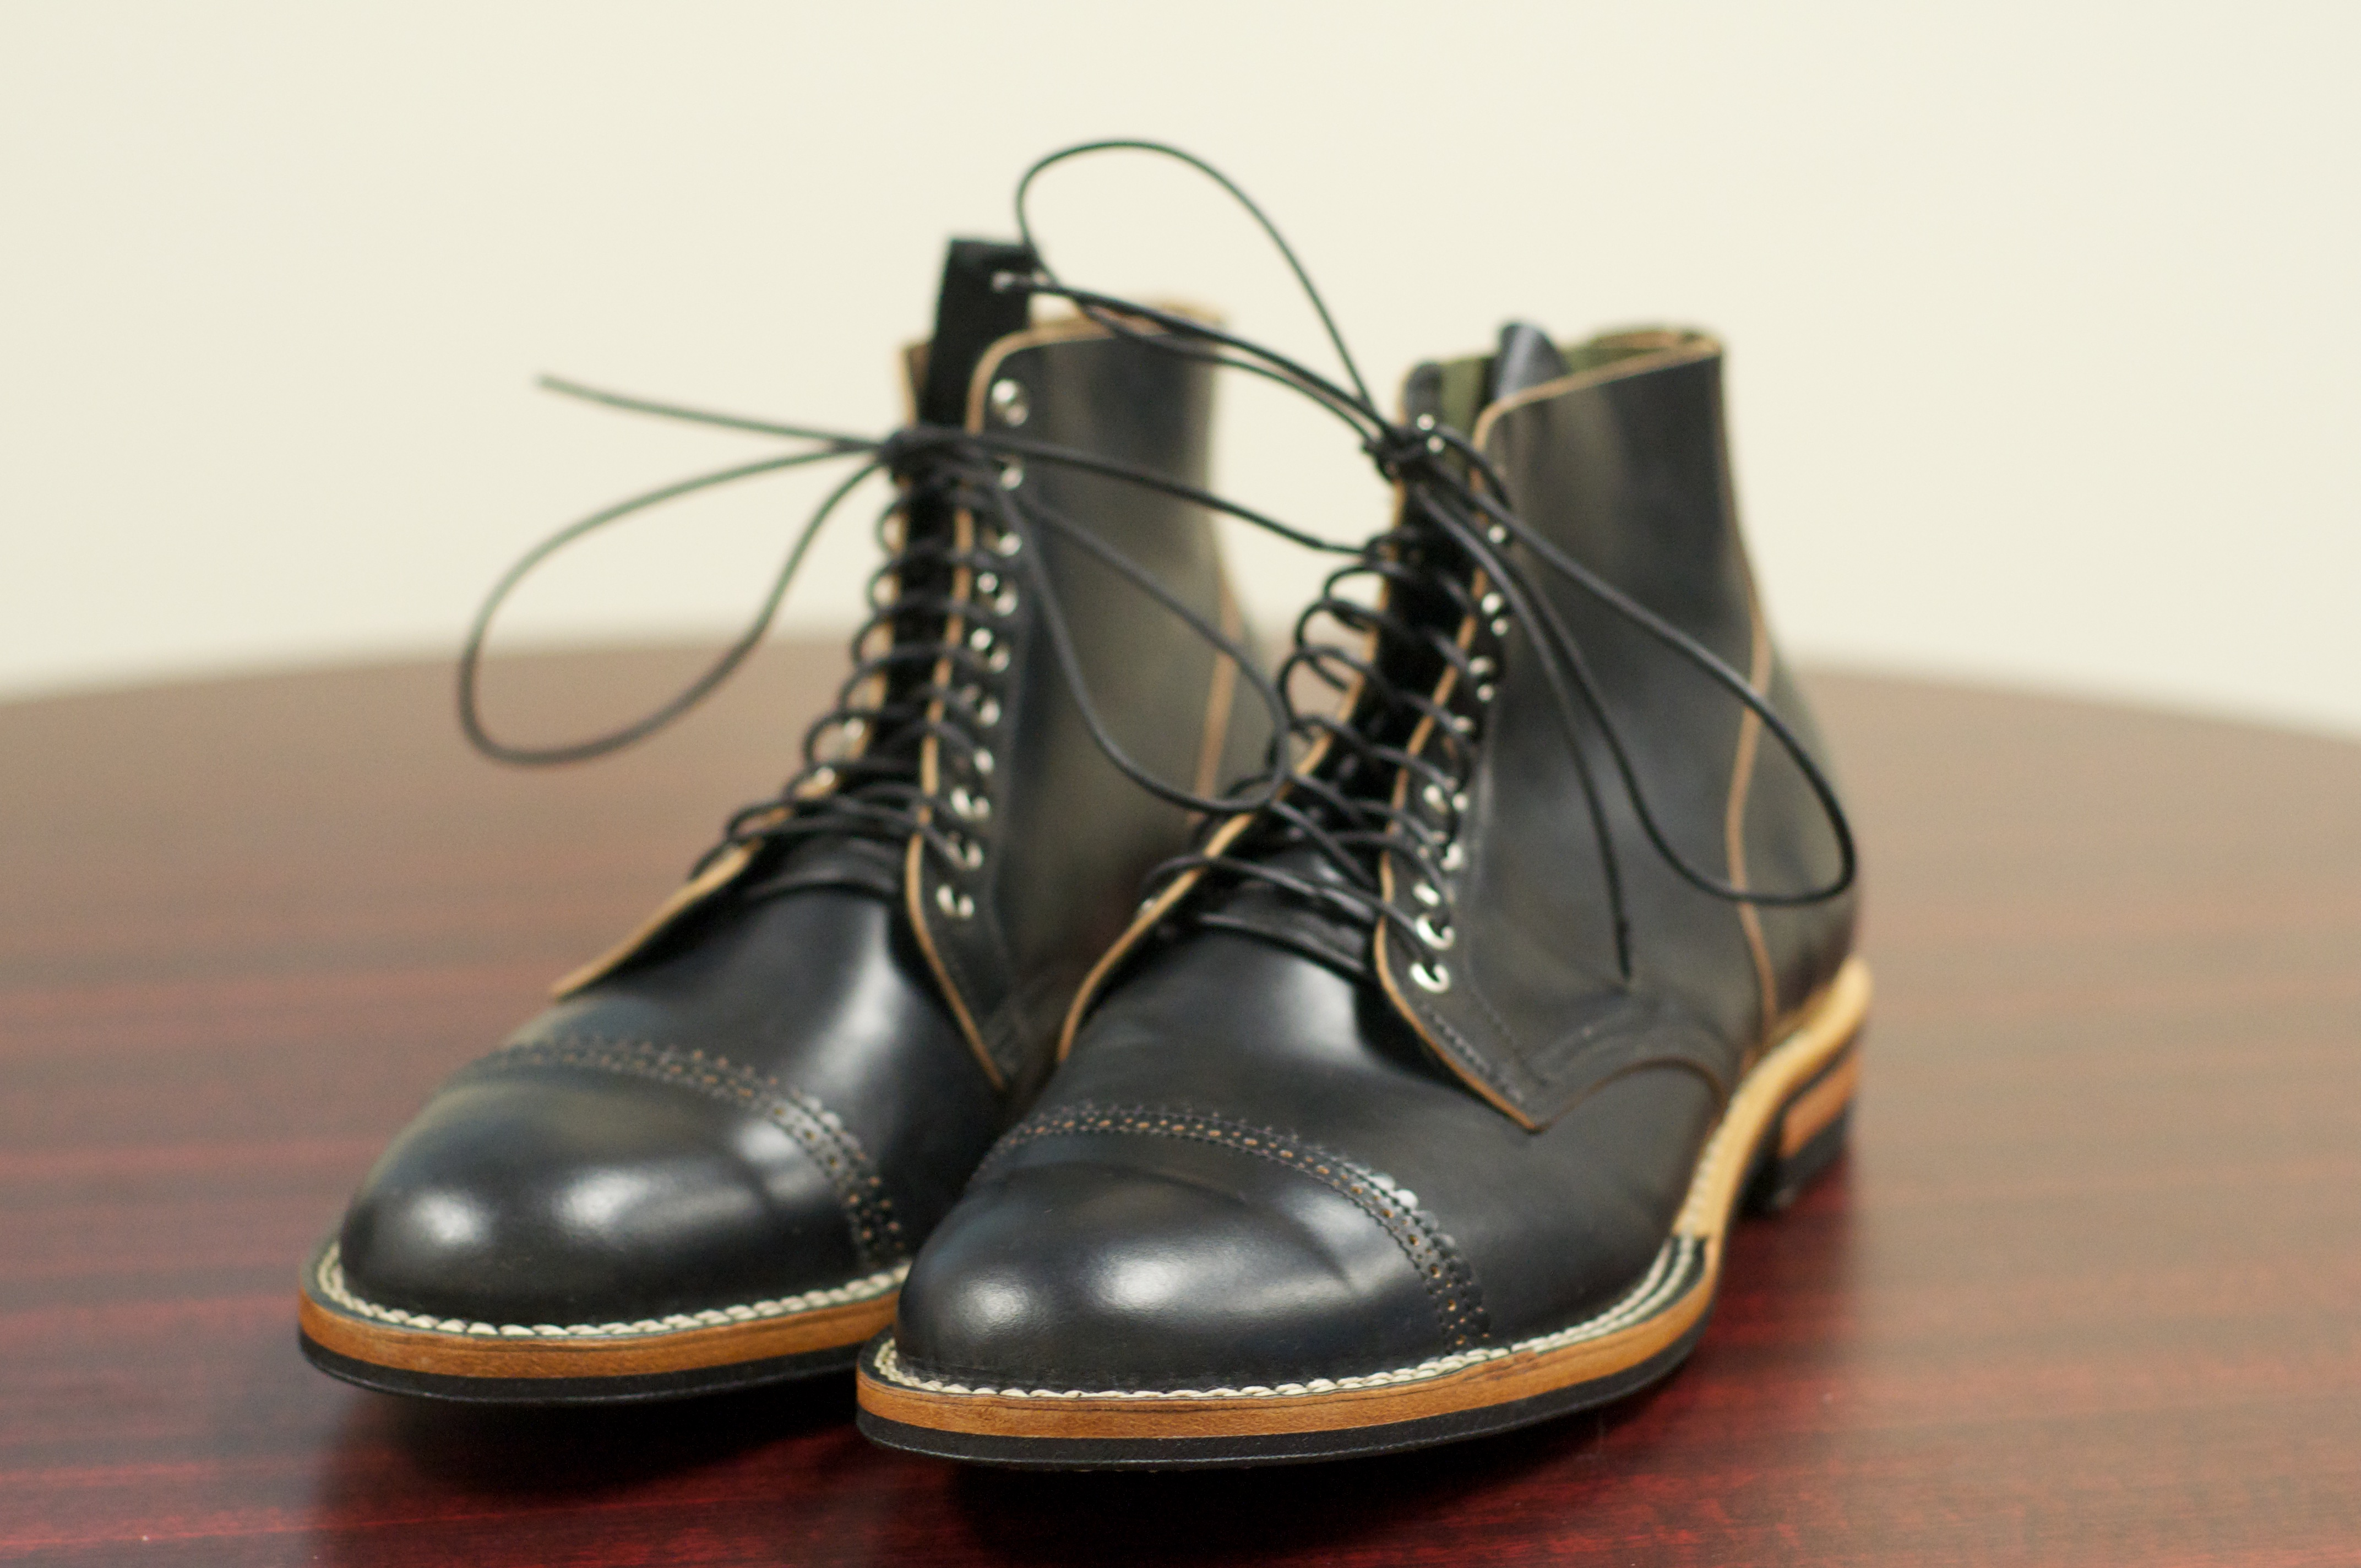 54e610cf61d SOLD: Viberg Boots in Black Shell Cordovan – 10.5D – Alden of San Diego